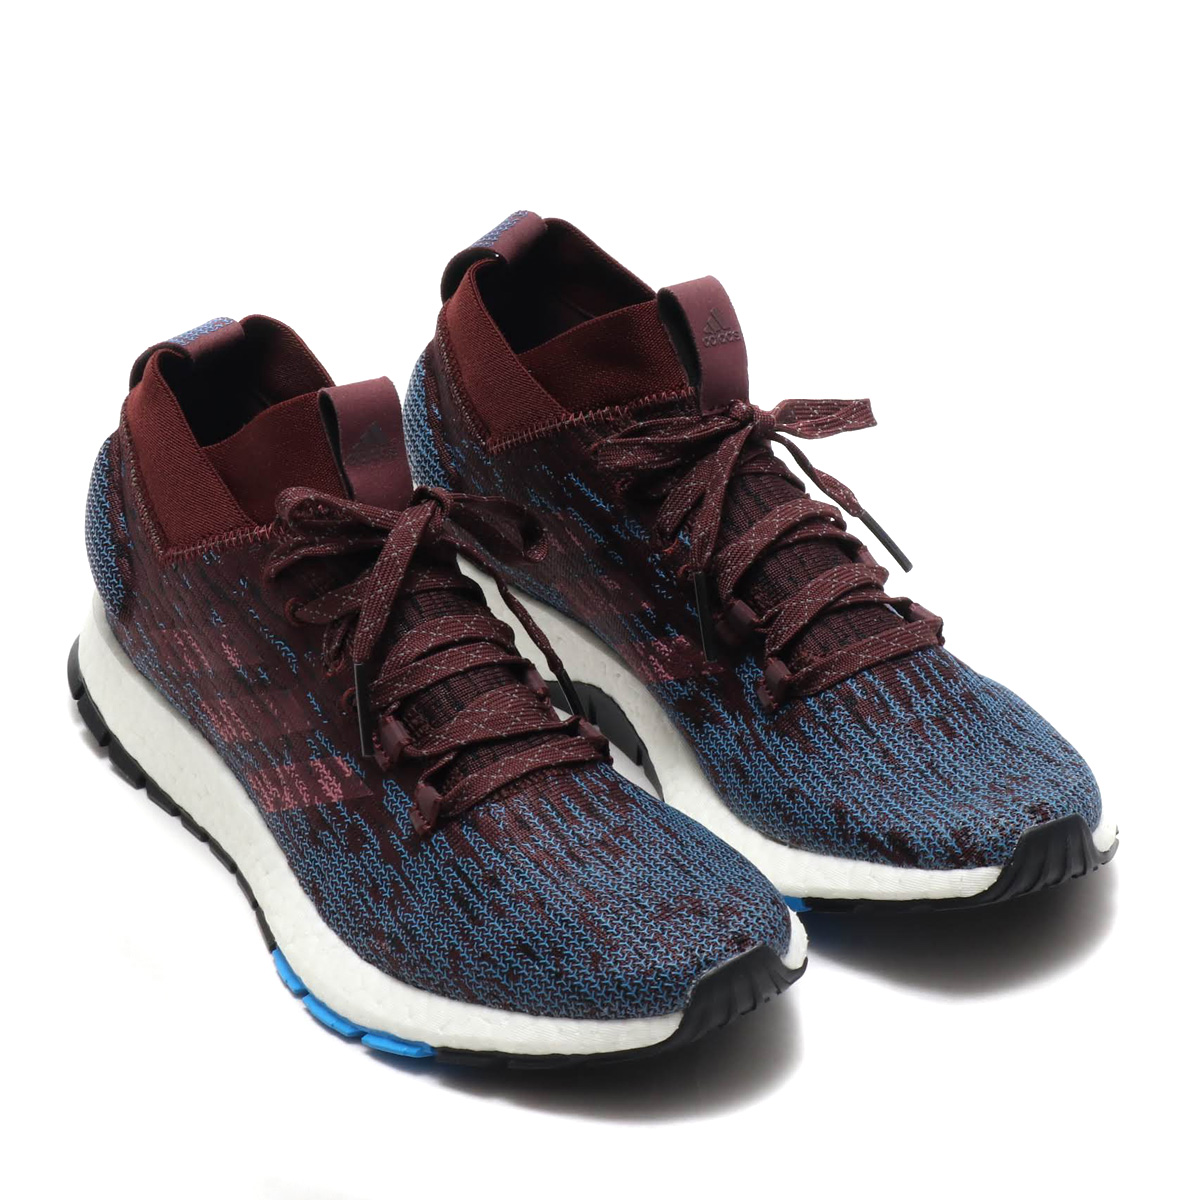 best service 1c0bf ccd61 adidas PureBOOST RBL (Adidas pure boost RBL) knight red   trace Marron F18  core  black 18FW-I